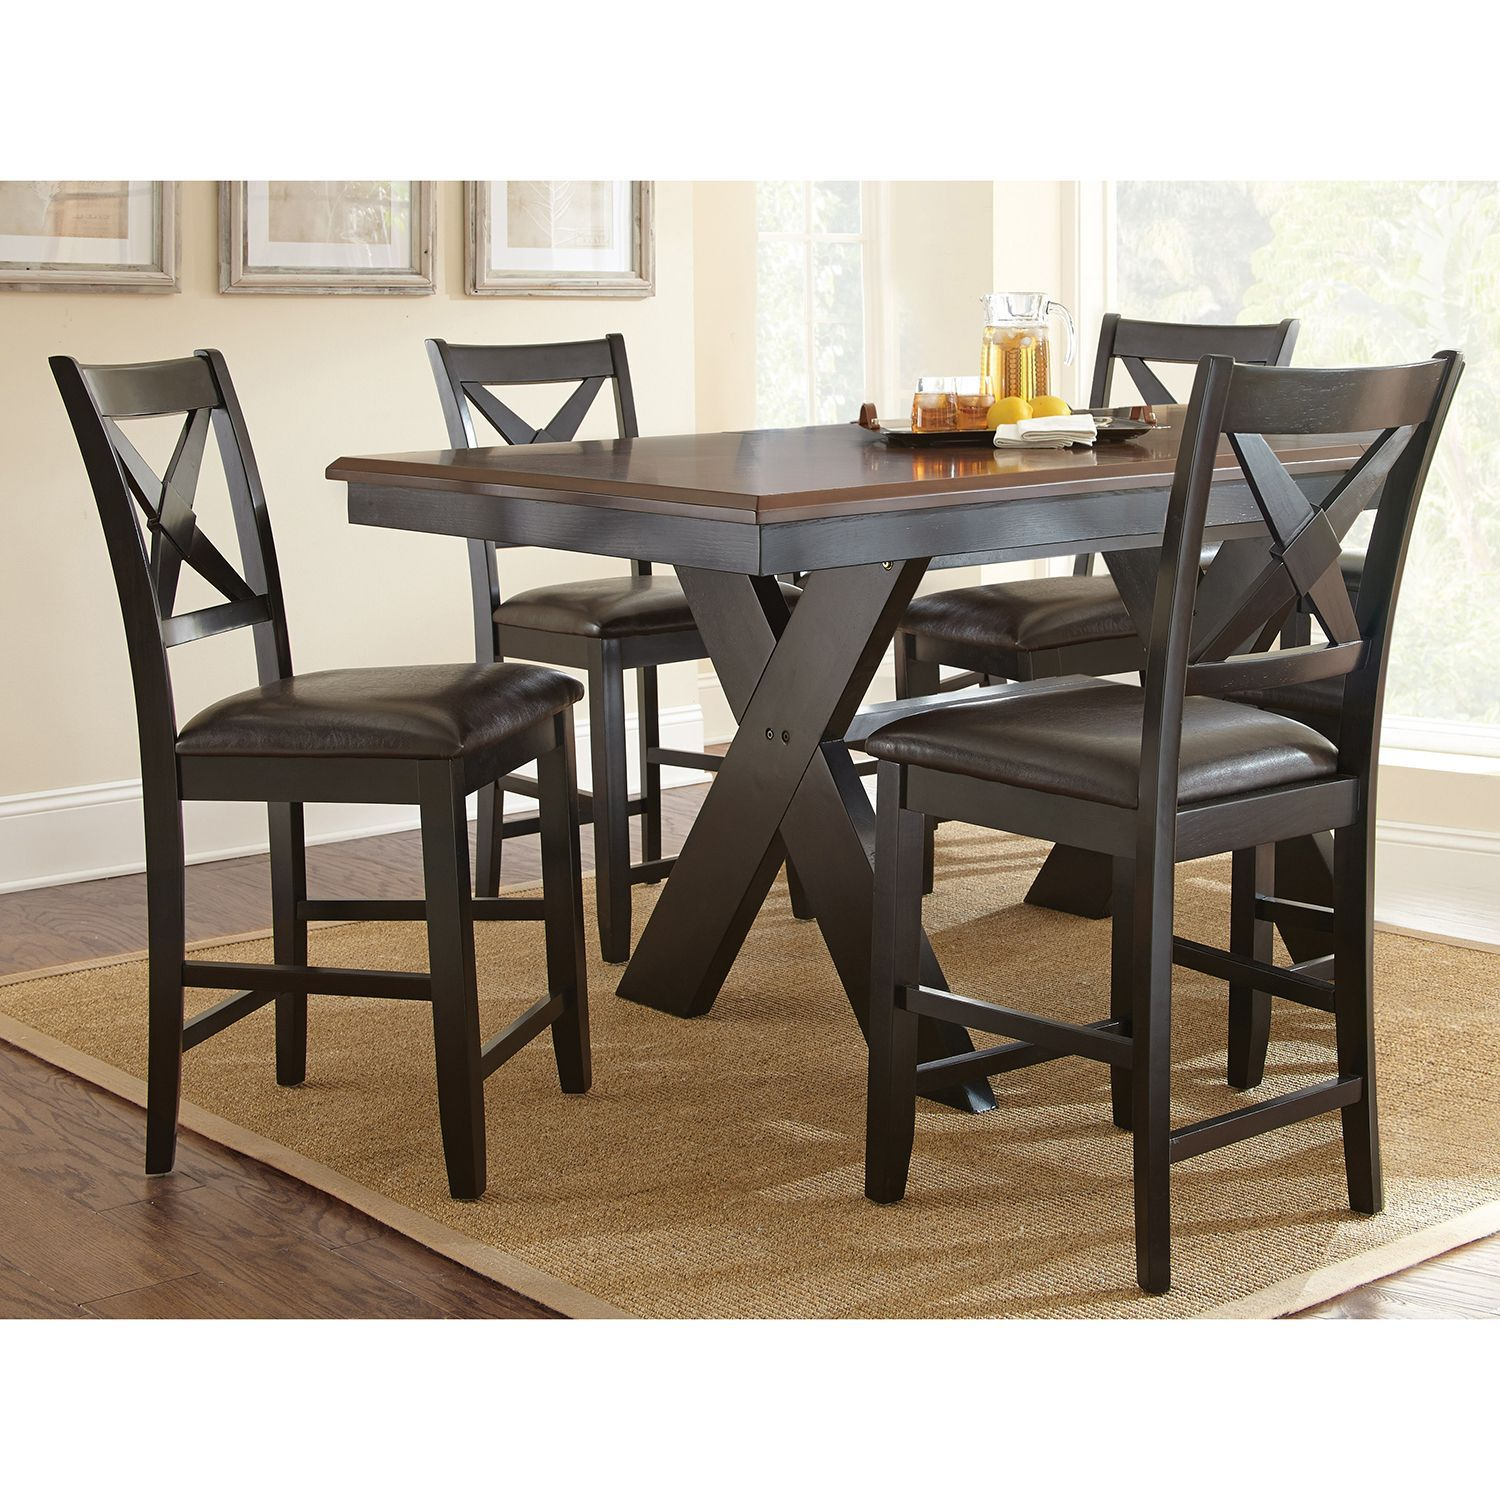 Victor Counter Height 5 Piece Dining Set Sam S Club Counter